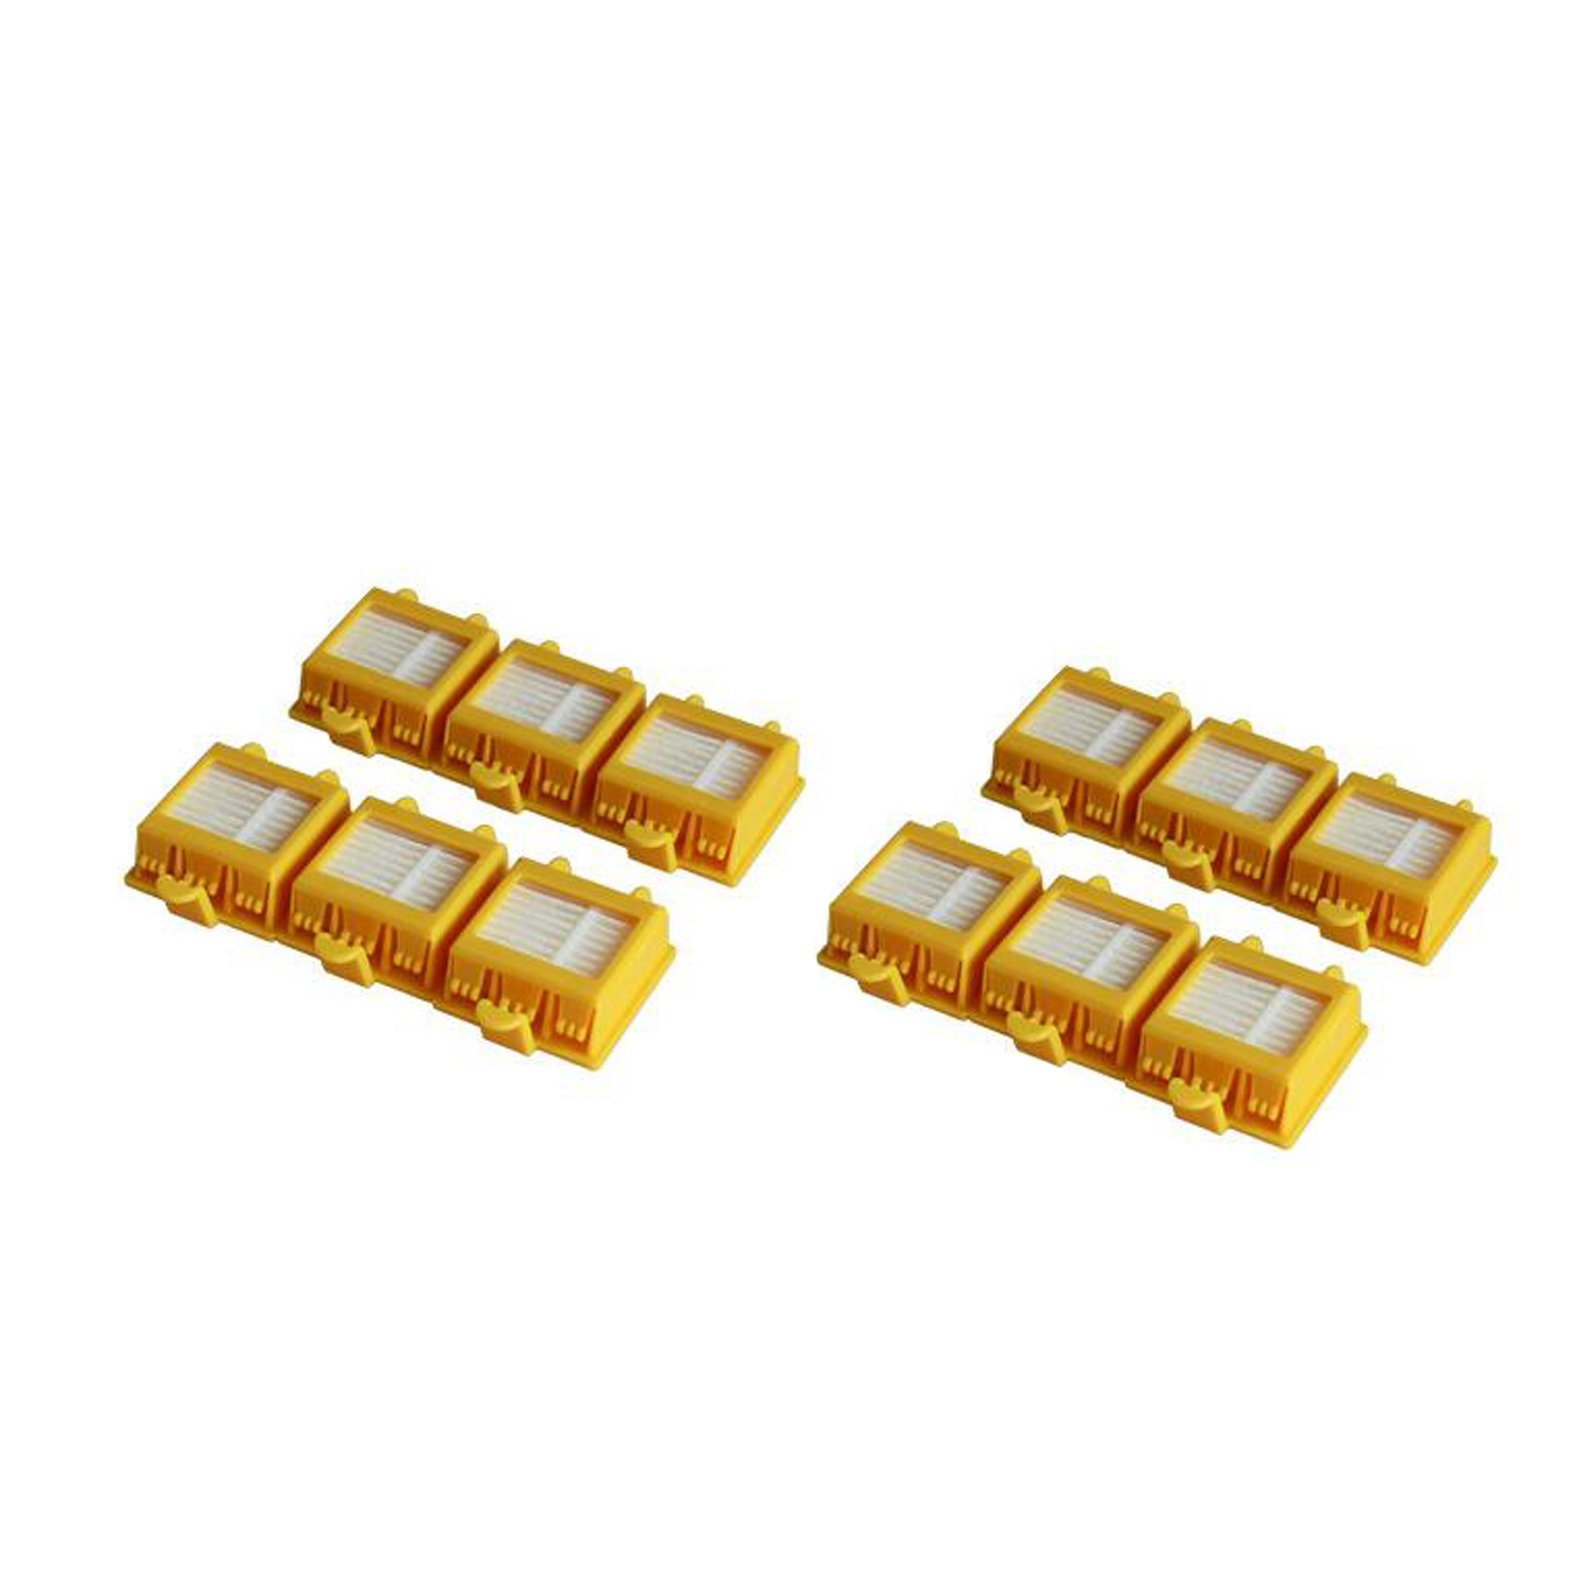 LOVE(TM)12 Pieces Filter for Robot 700 Series 750 760 770 780 790 Vacuum Cleaner Hepa Filter Wholesale